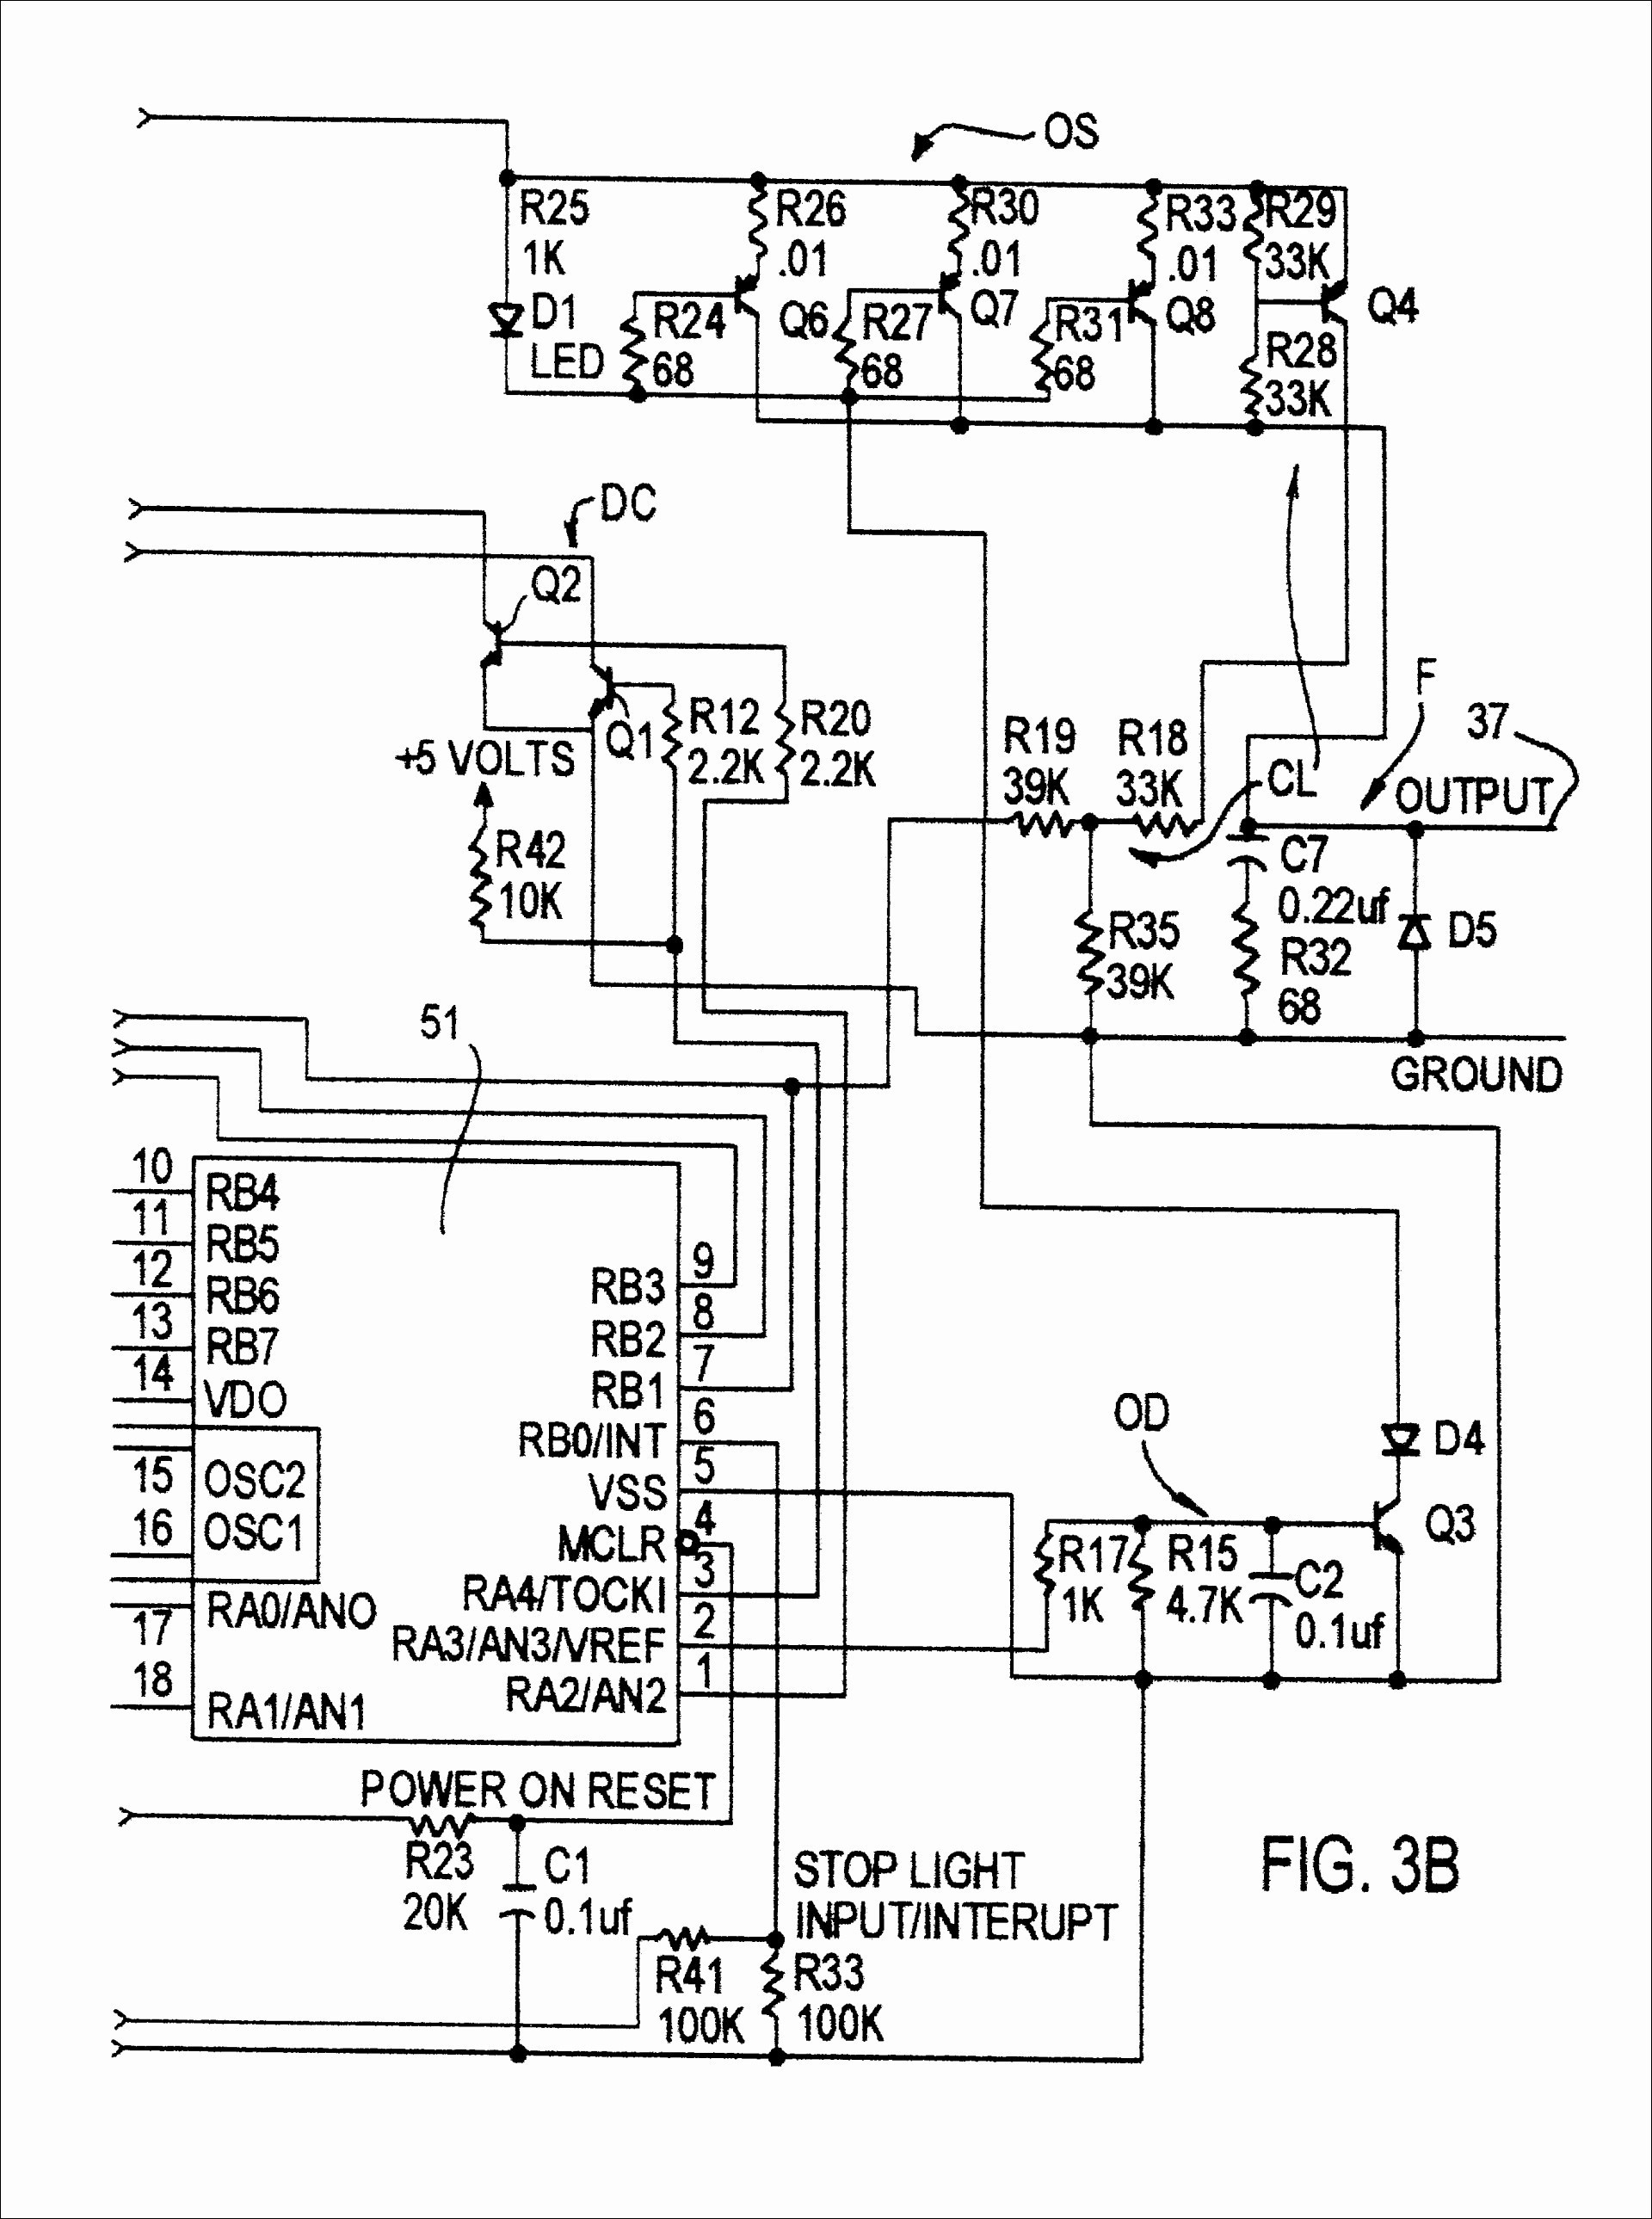 Cool Razor Mini Chopper Wiring Diagram Simple E100 Scooter Wire Diagrams Wiring Cloud Hisonepsysticxongrecoveryedborg